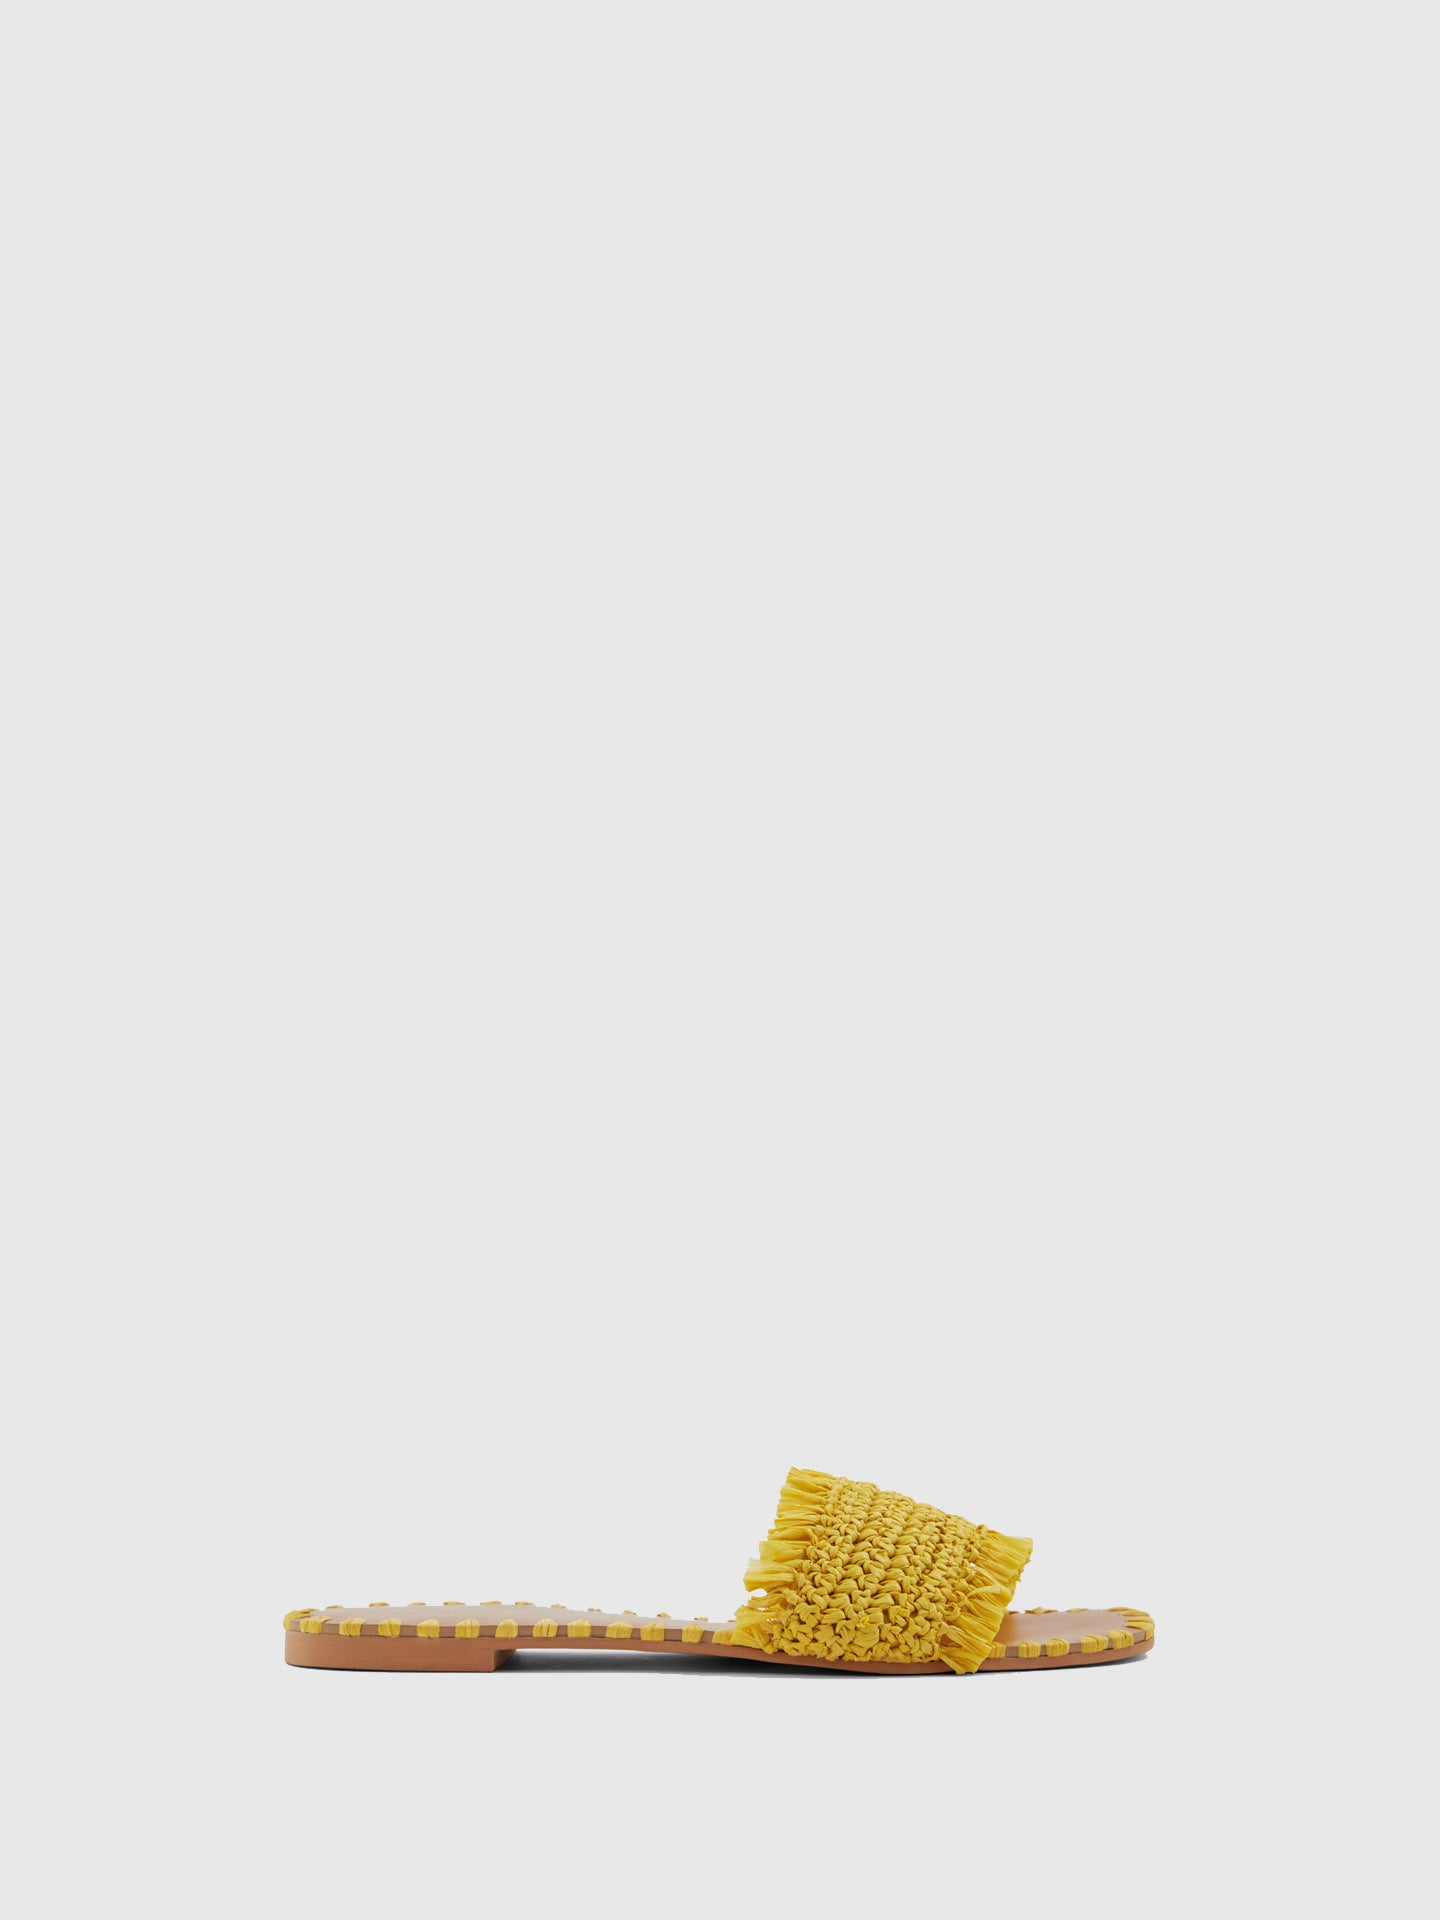 Aldo Yellow Open Toe Sandals